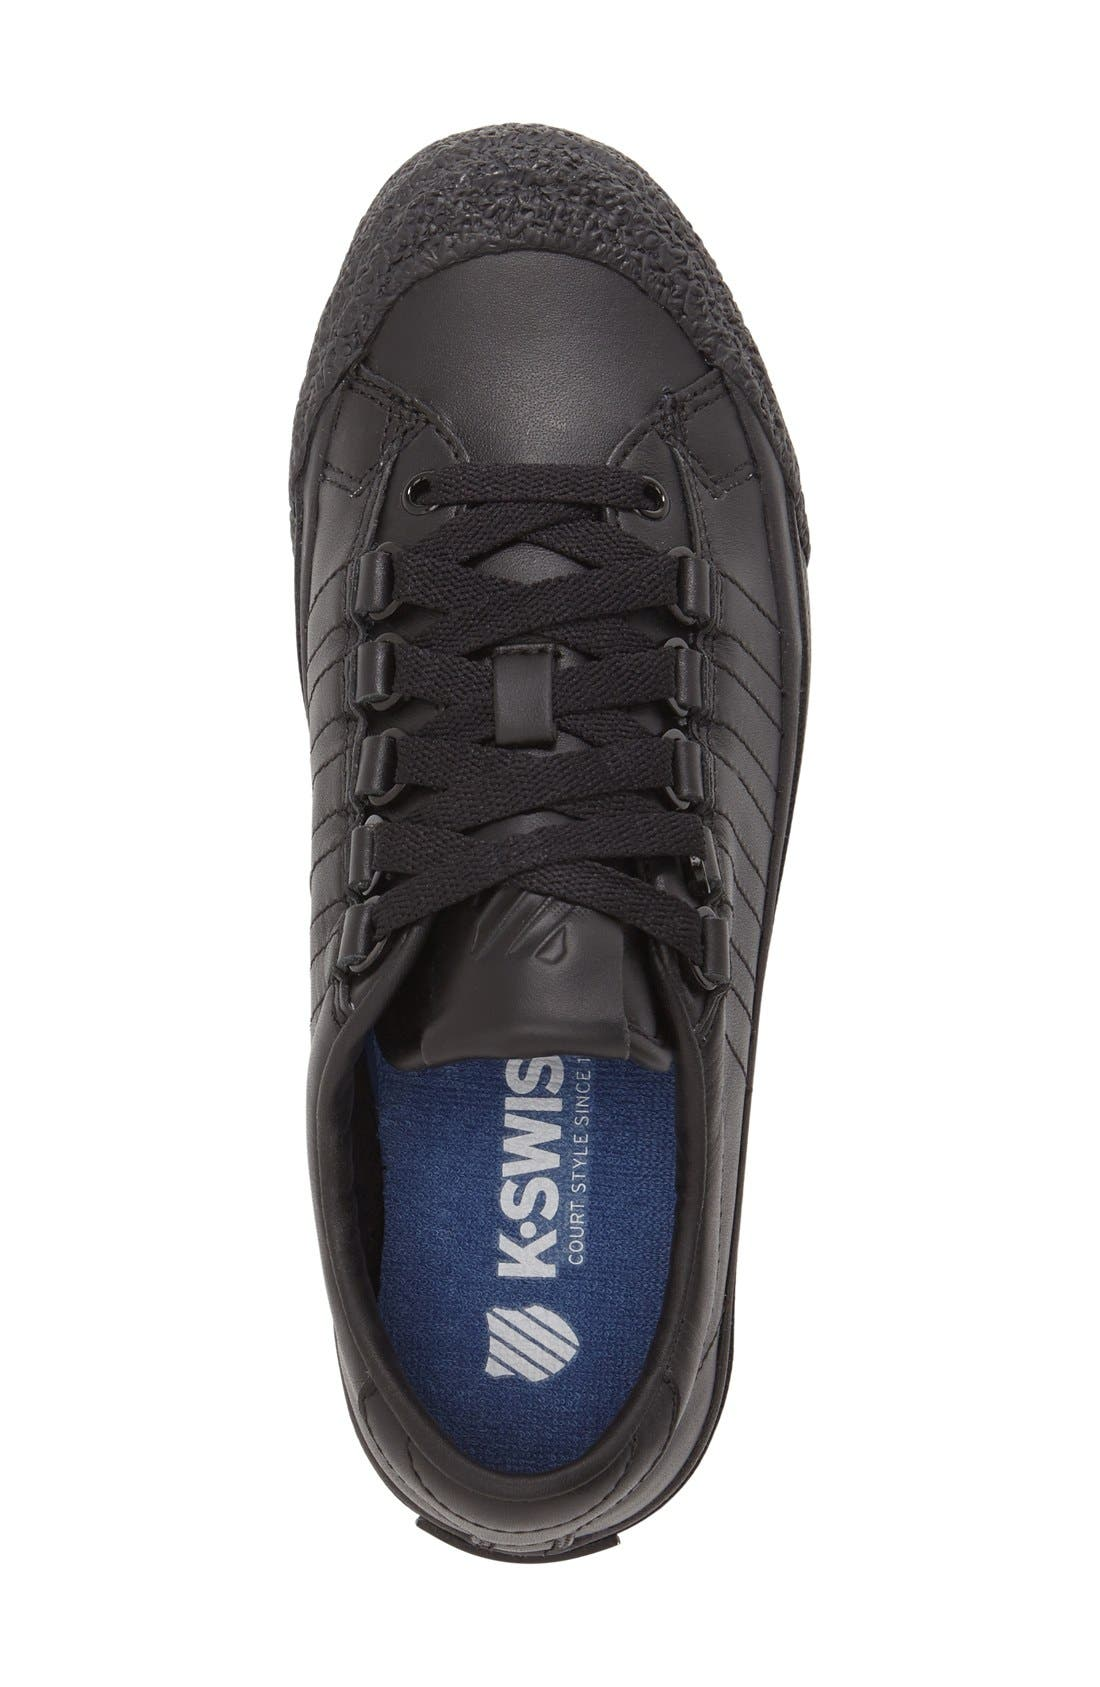 Alternate Image 3  - K-Swiss 'Irvine' Sneaker (Women)